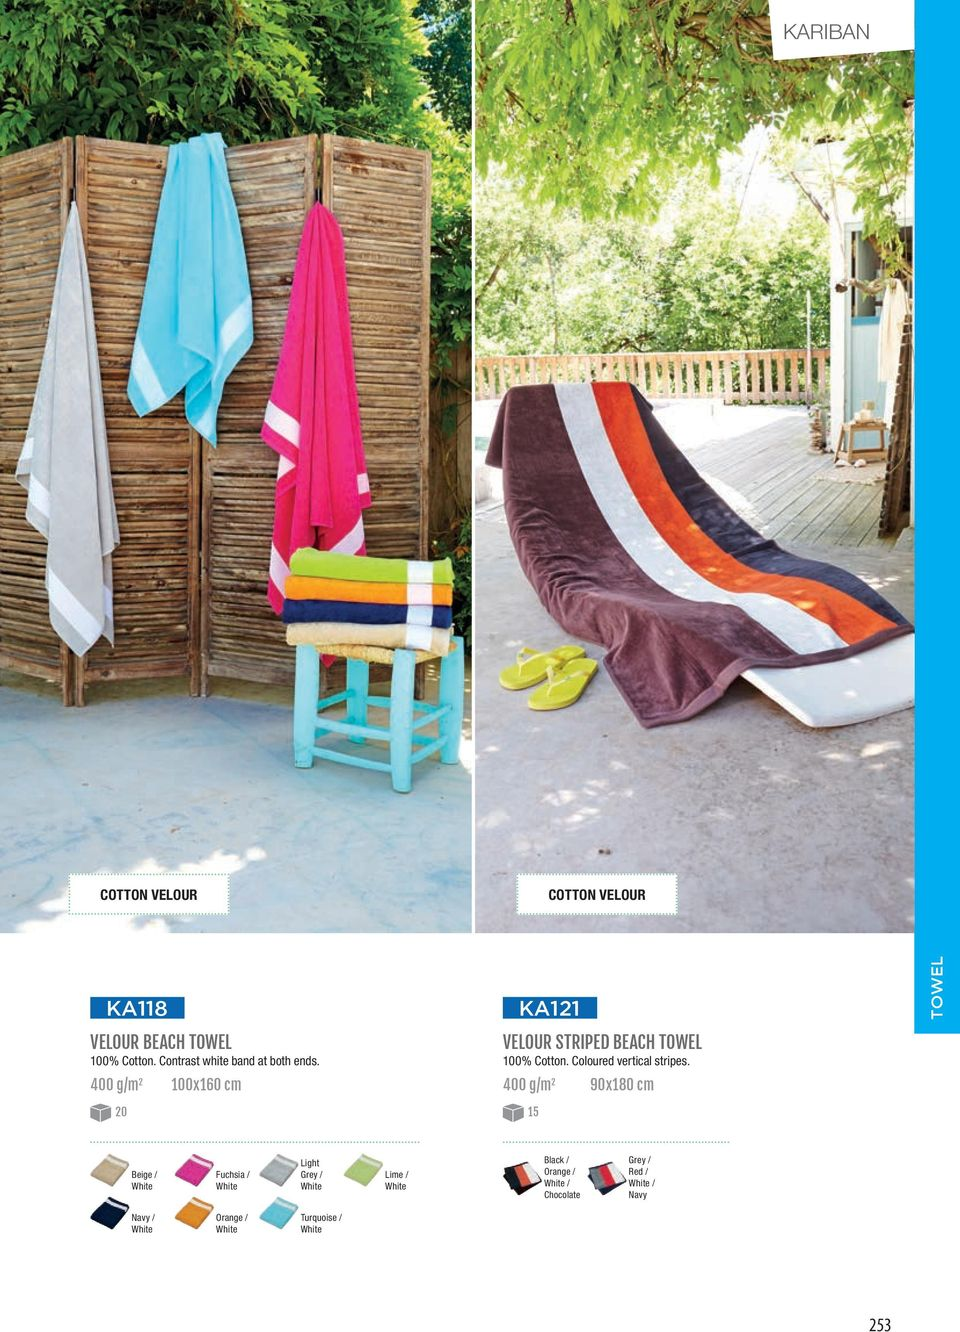 400 g/m 2 100x160 cm KA121 VELOUR STRIPED BEACH TOWEL 100% Cotton.